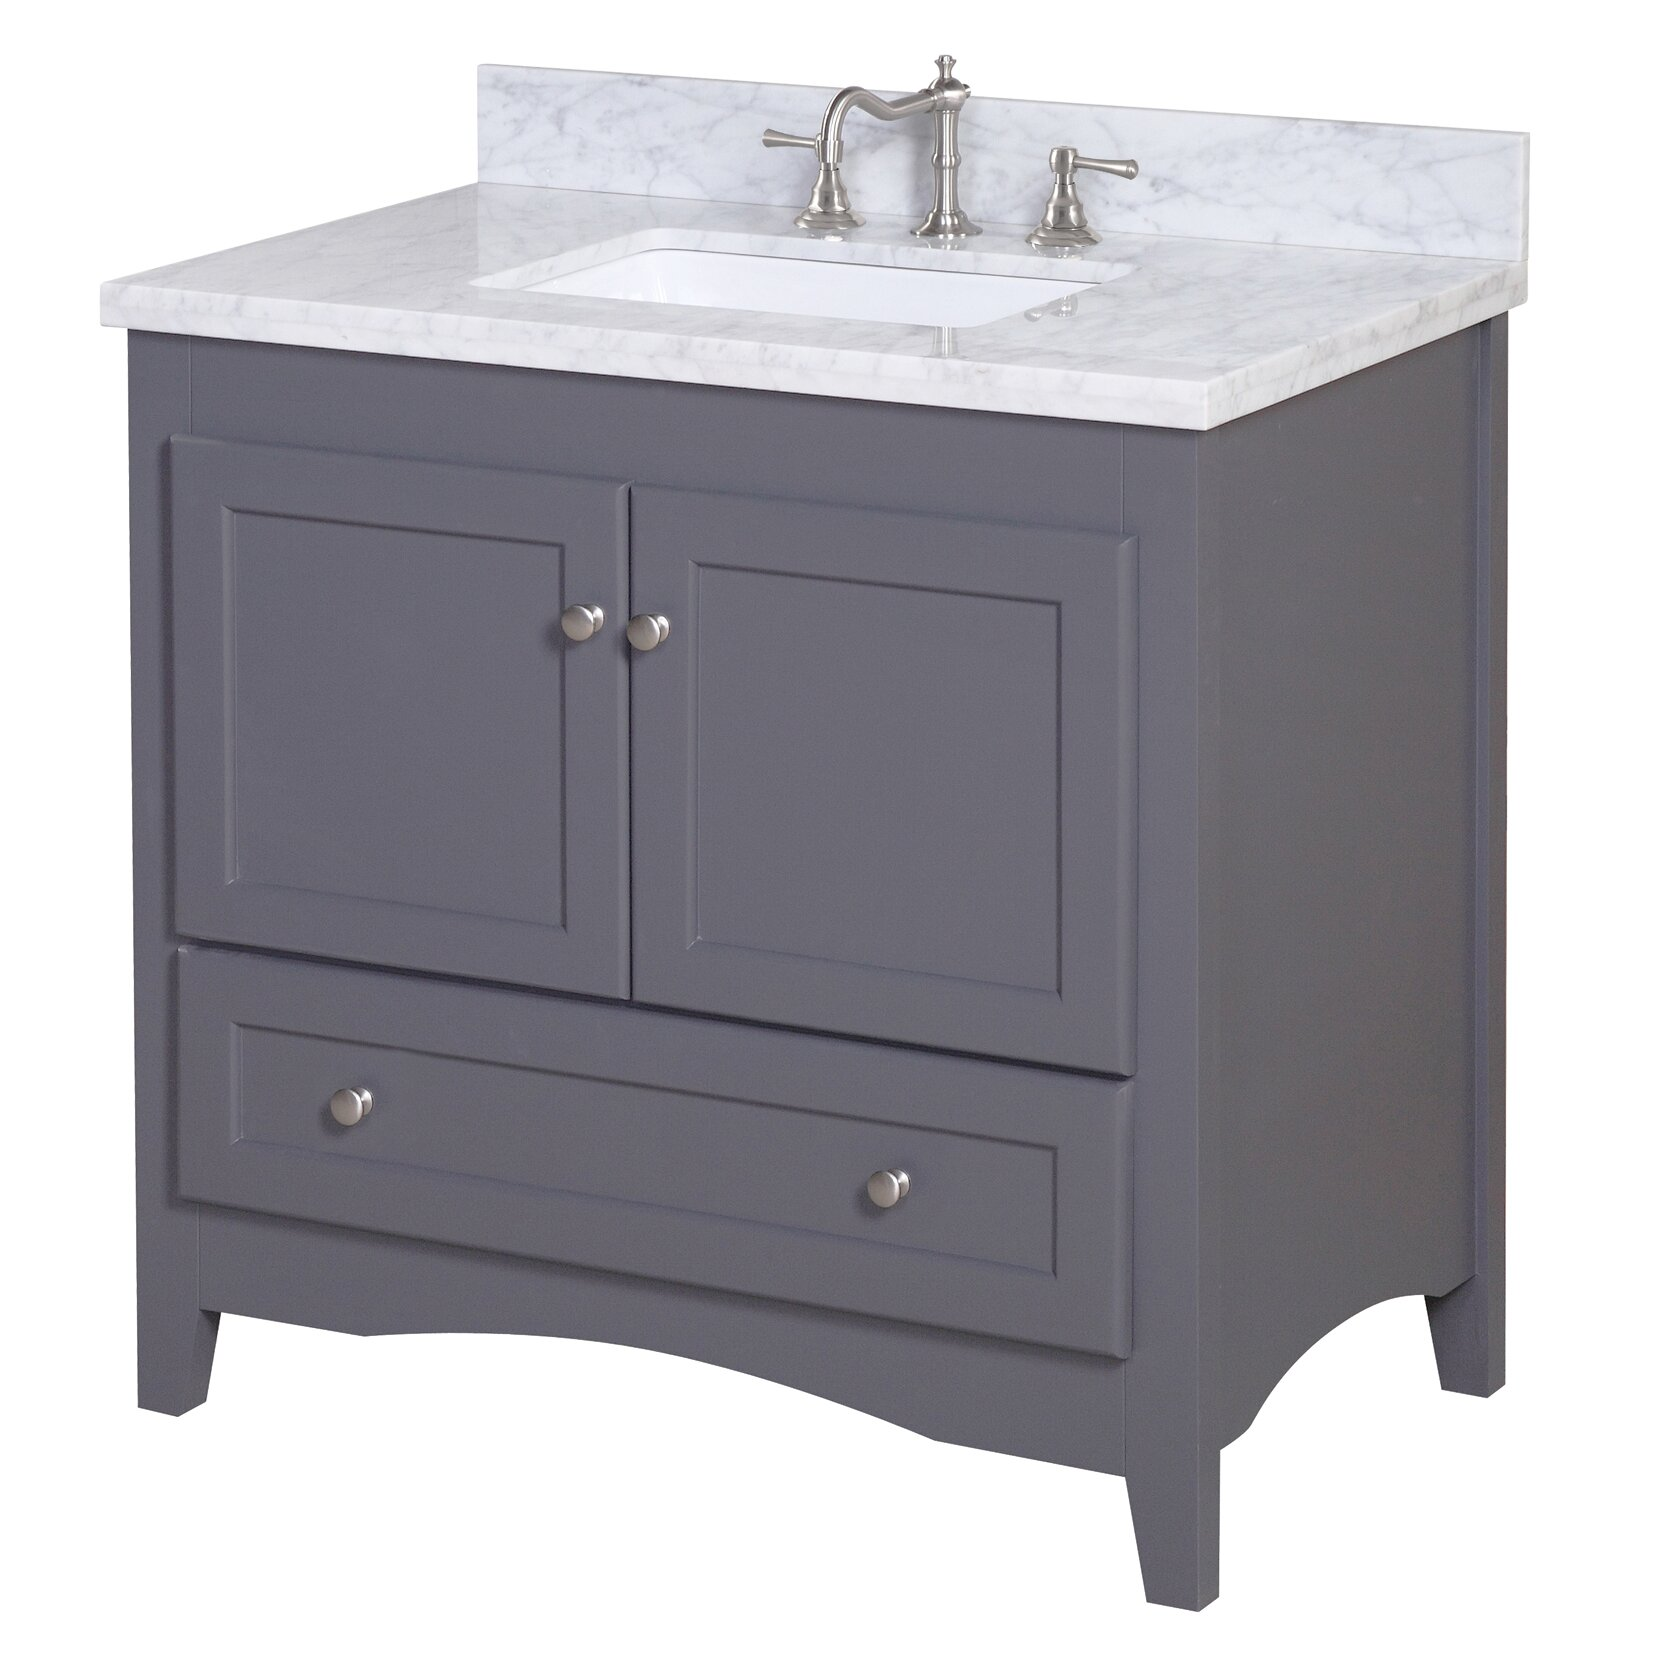 Kbc abbey 36 single bathroom vanity set reviews wayfair for Single bathroom vanity